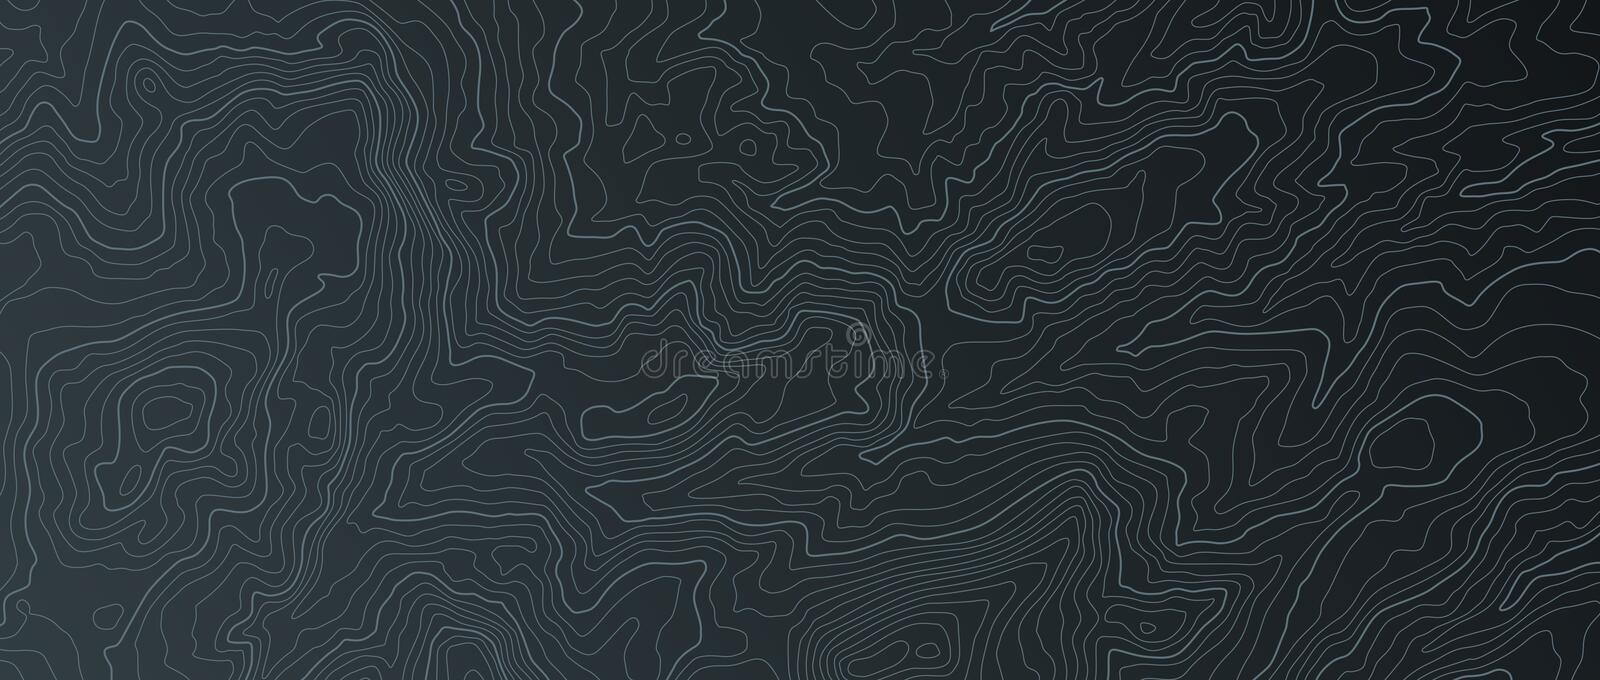 Terrain map. Contours trails, image grid geographic relief topographic contour line maps cartography texture, vector. Geo charts mapping mountain topo sea royalty free illustration